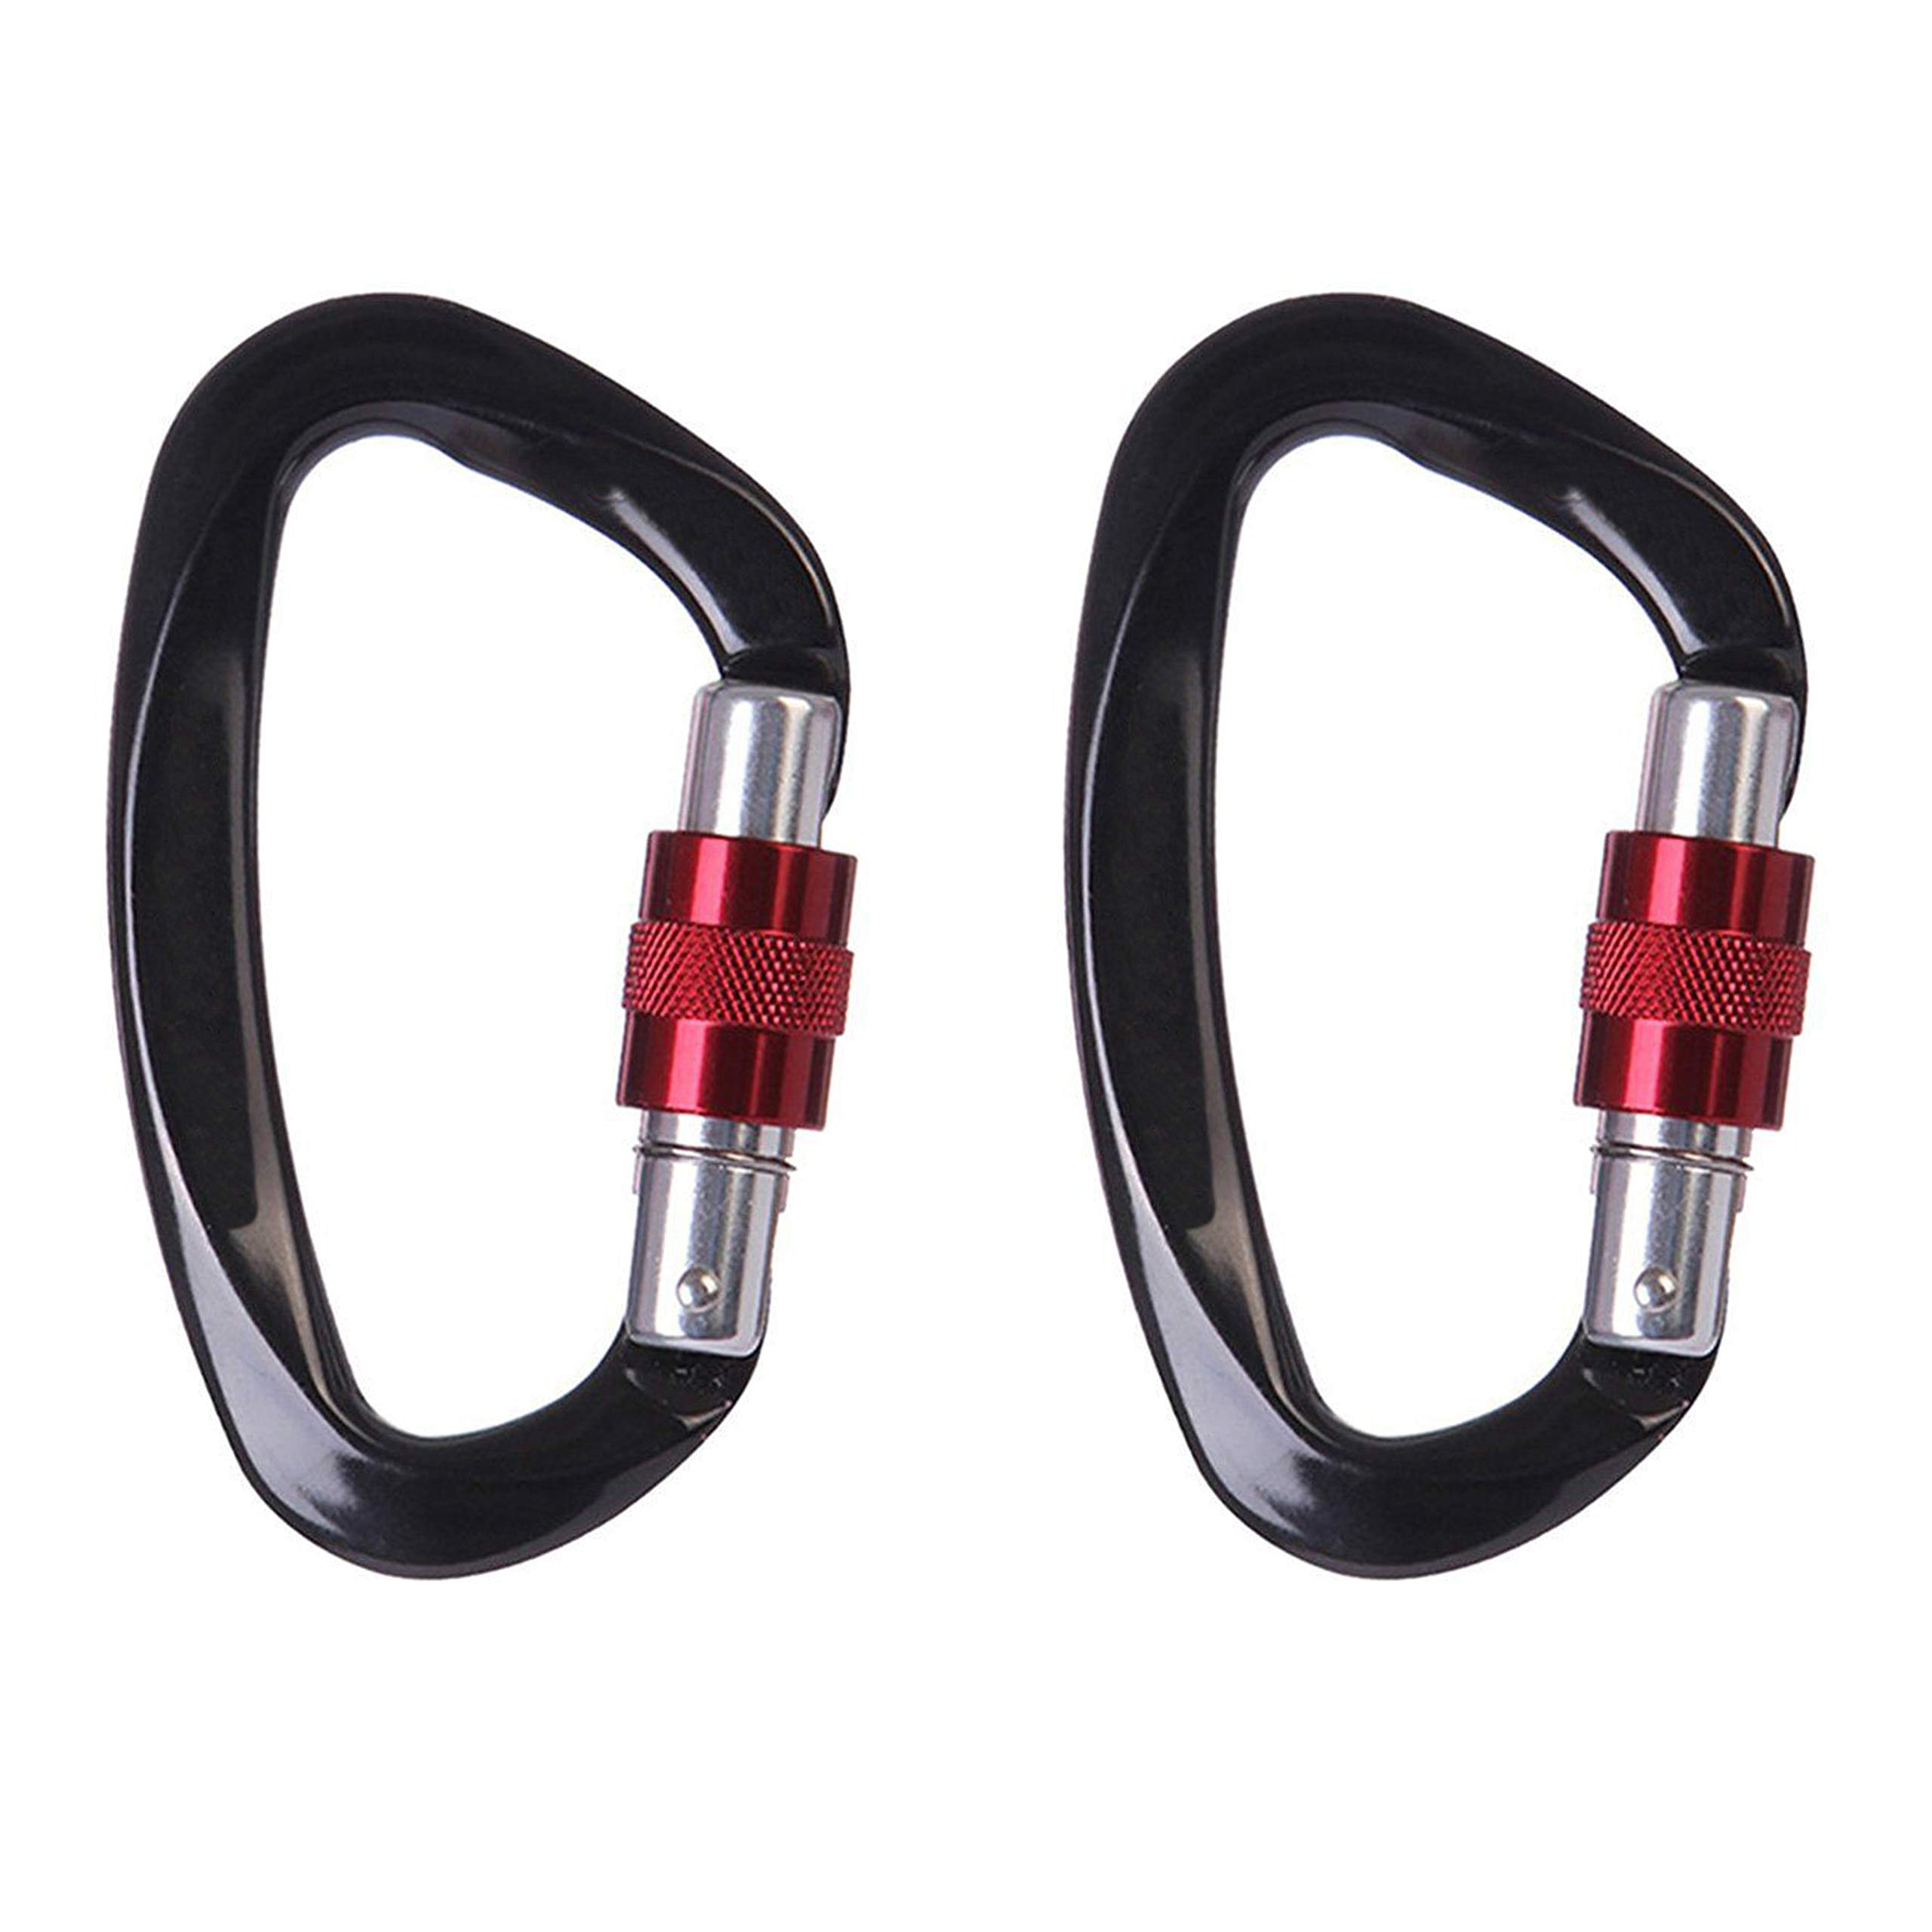 GiftOverIt 2 Pack Carabiner - Strength Locking Carabiner Large 4 inch Heavy Duty Screwgate 25 kn (2500 kg /5511 lbs)